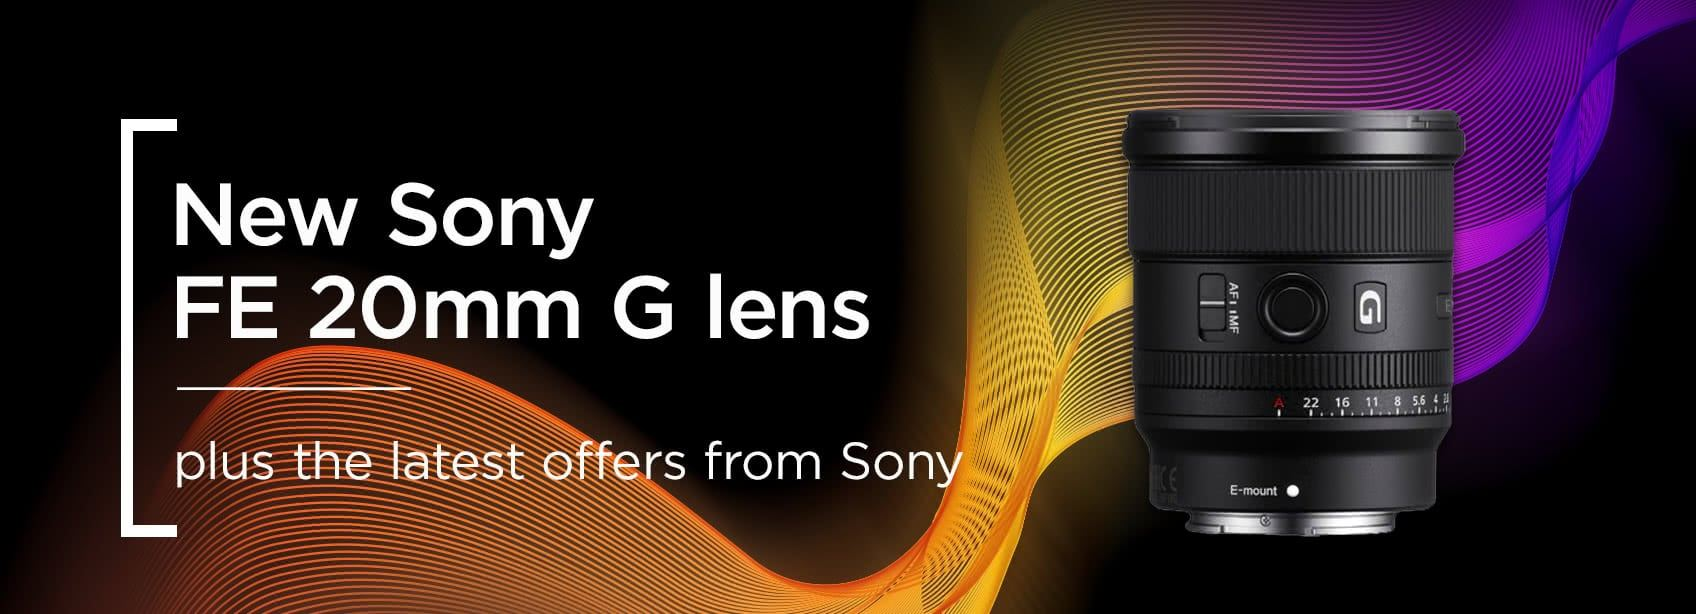 New Sony FE 20mm G lens